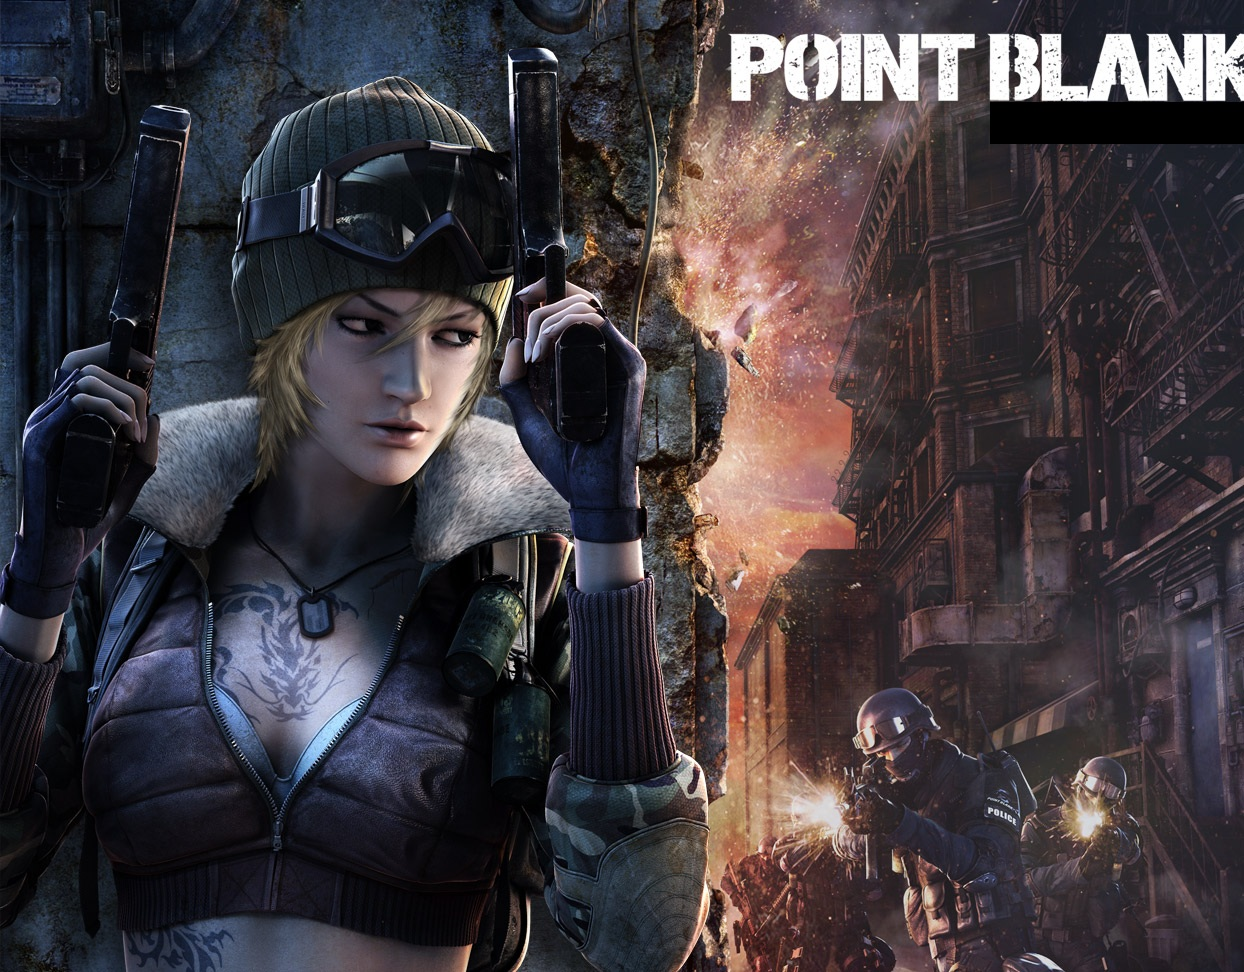 point blank ekran goruntusu Point Blank Simple Hotkey Auto On Wallhack Hile botu 25 Agustos